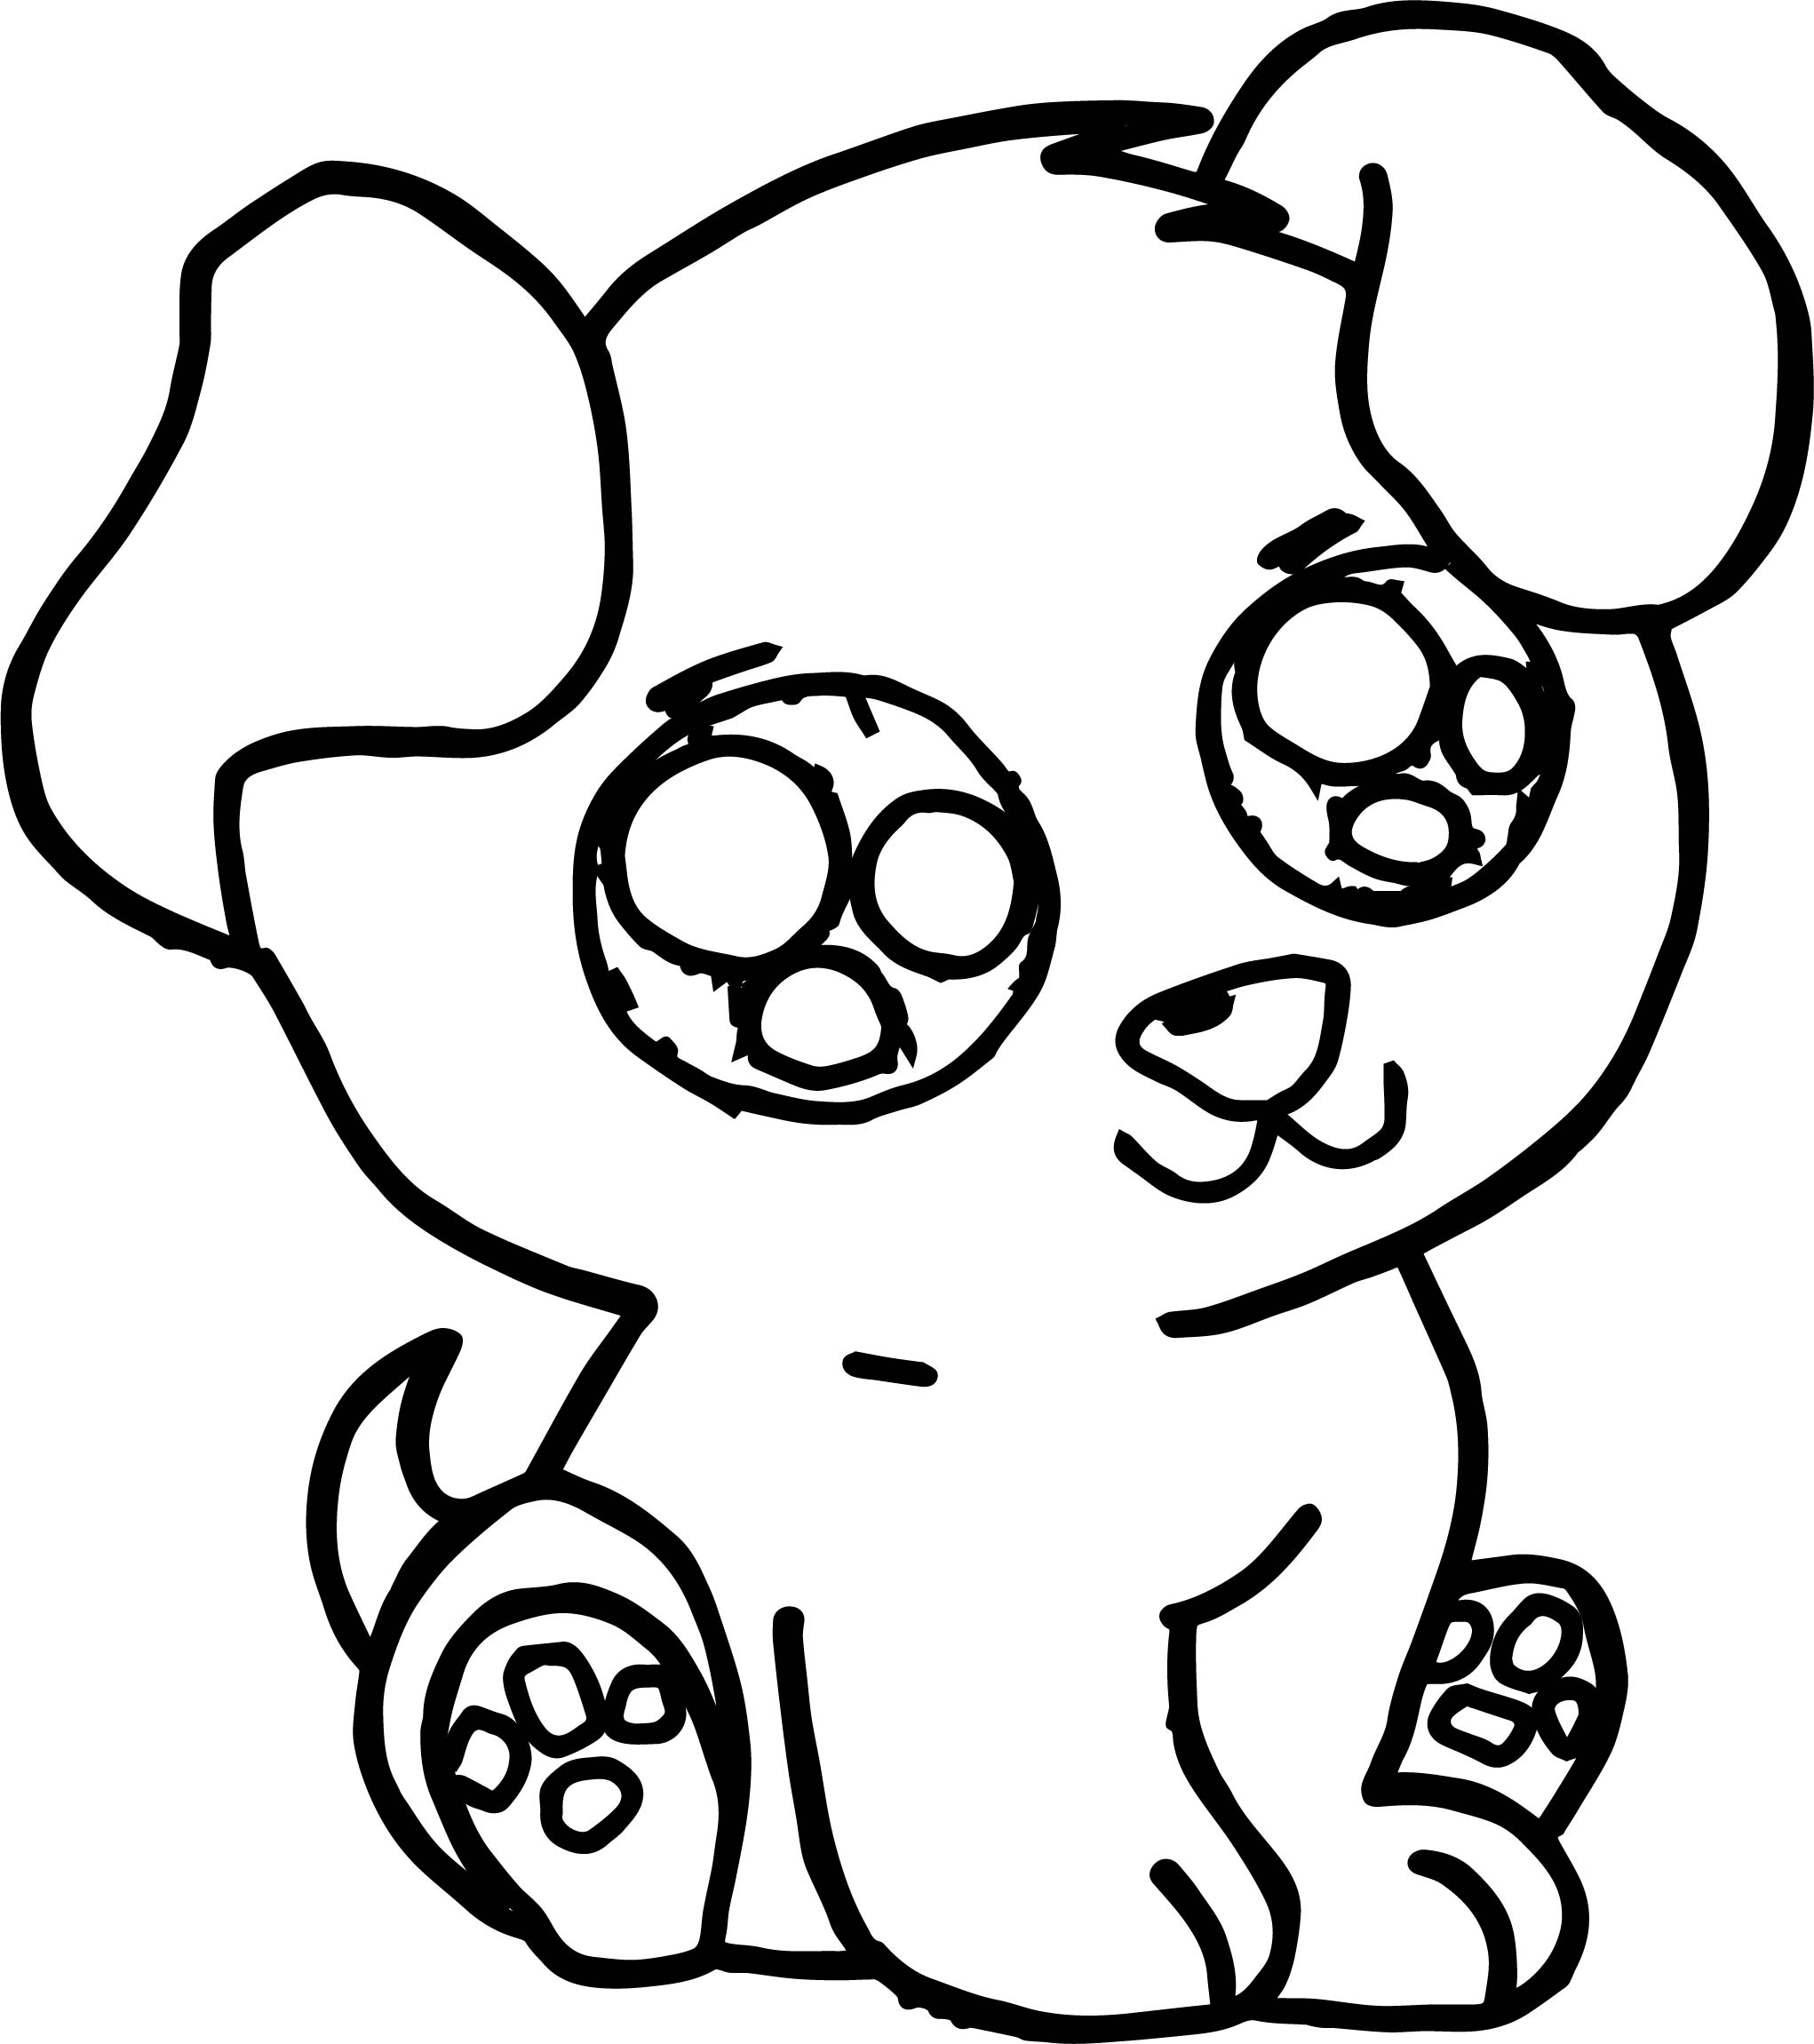 Cute puppy free images puppy dog coloring page for Coloring pages that are cute